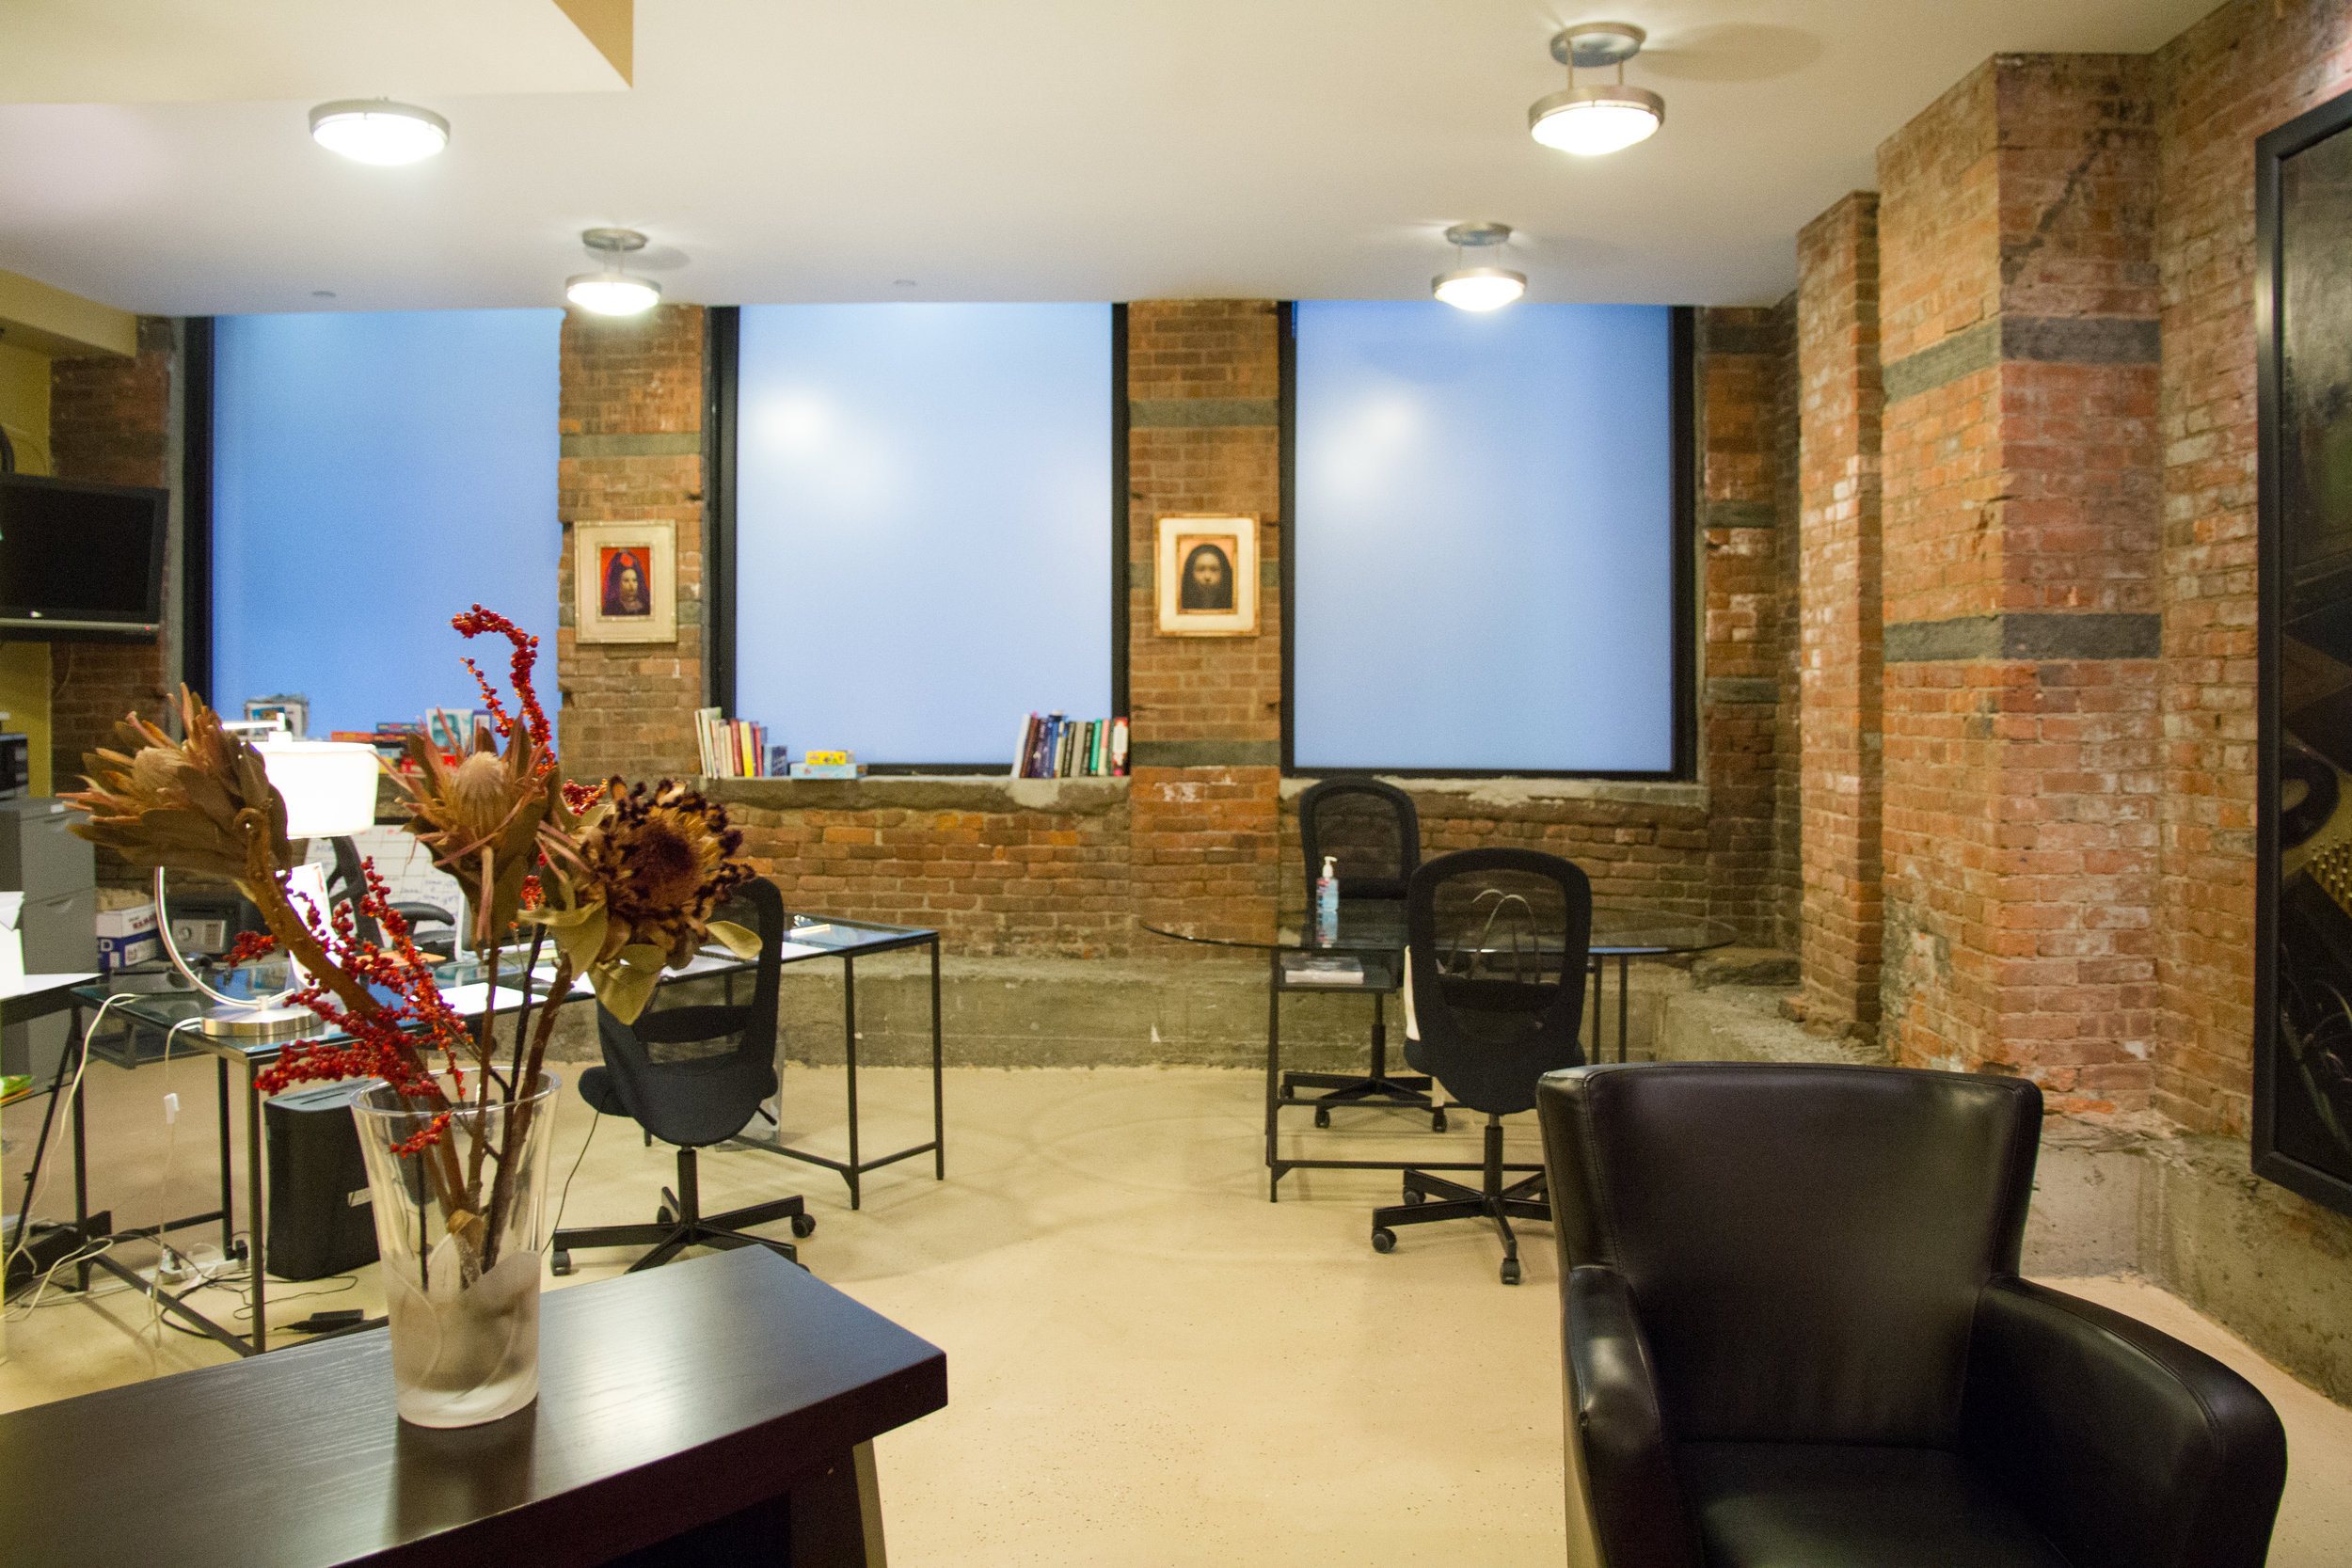 Huge Space natural light offices downtown tribeca financial district wall street psychiatrist psychology psychotherapists